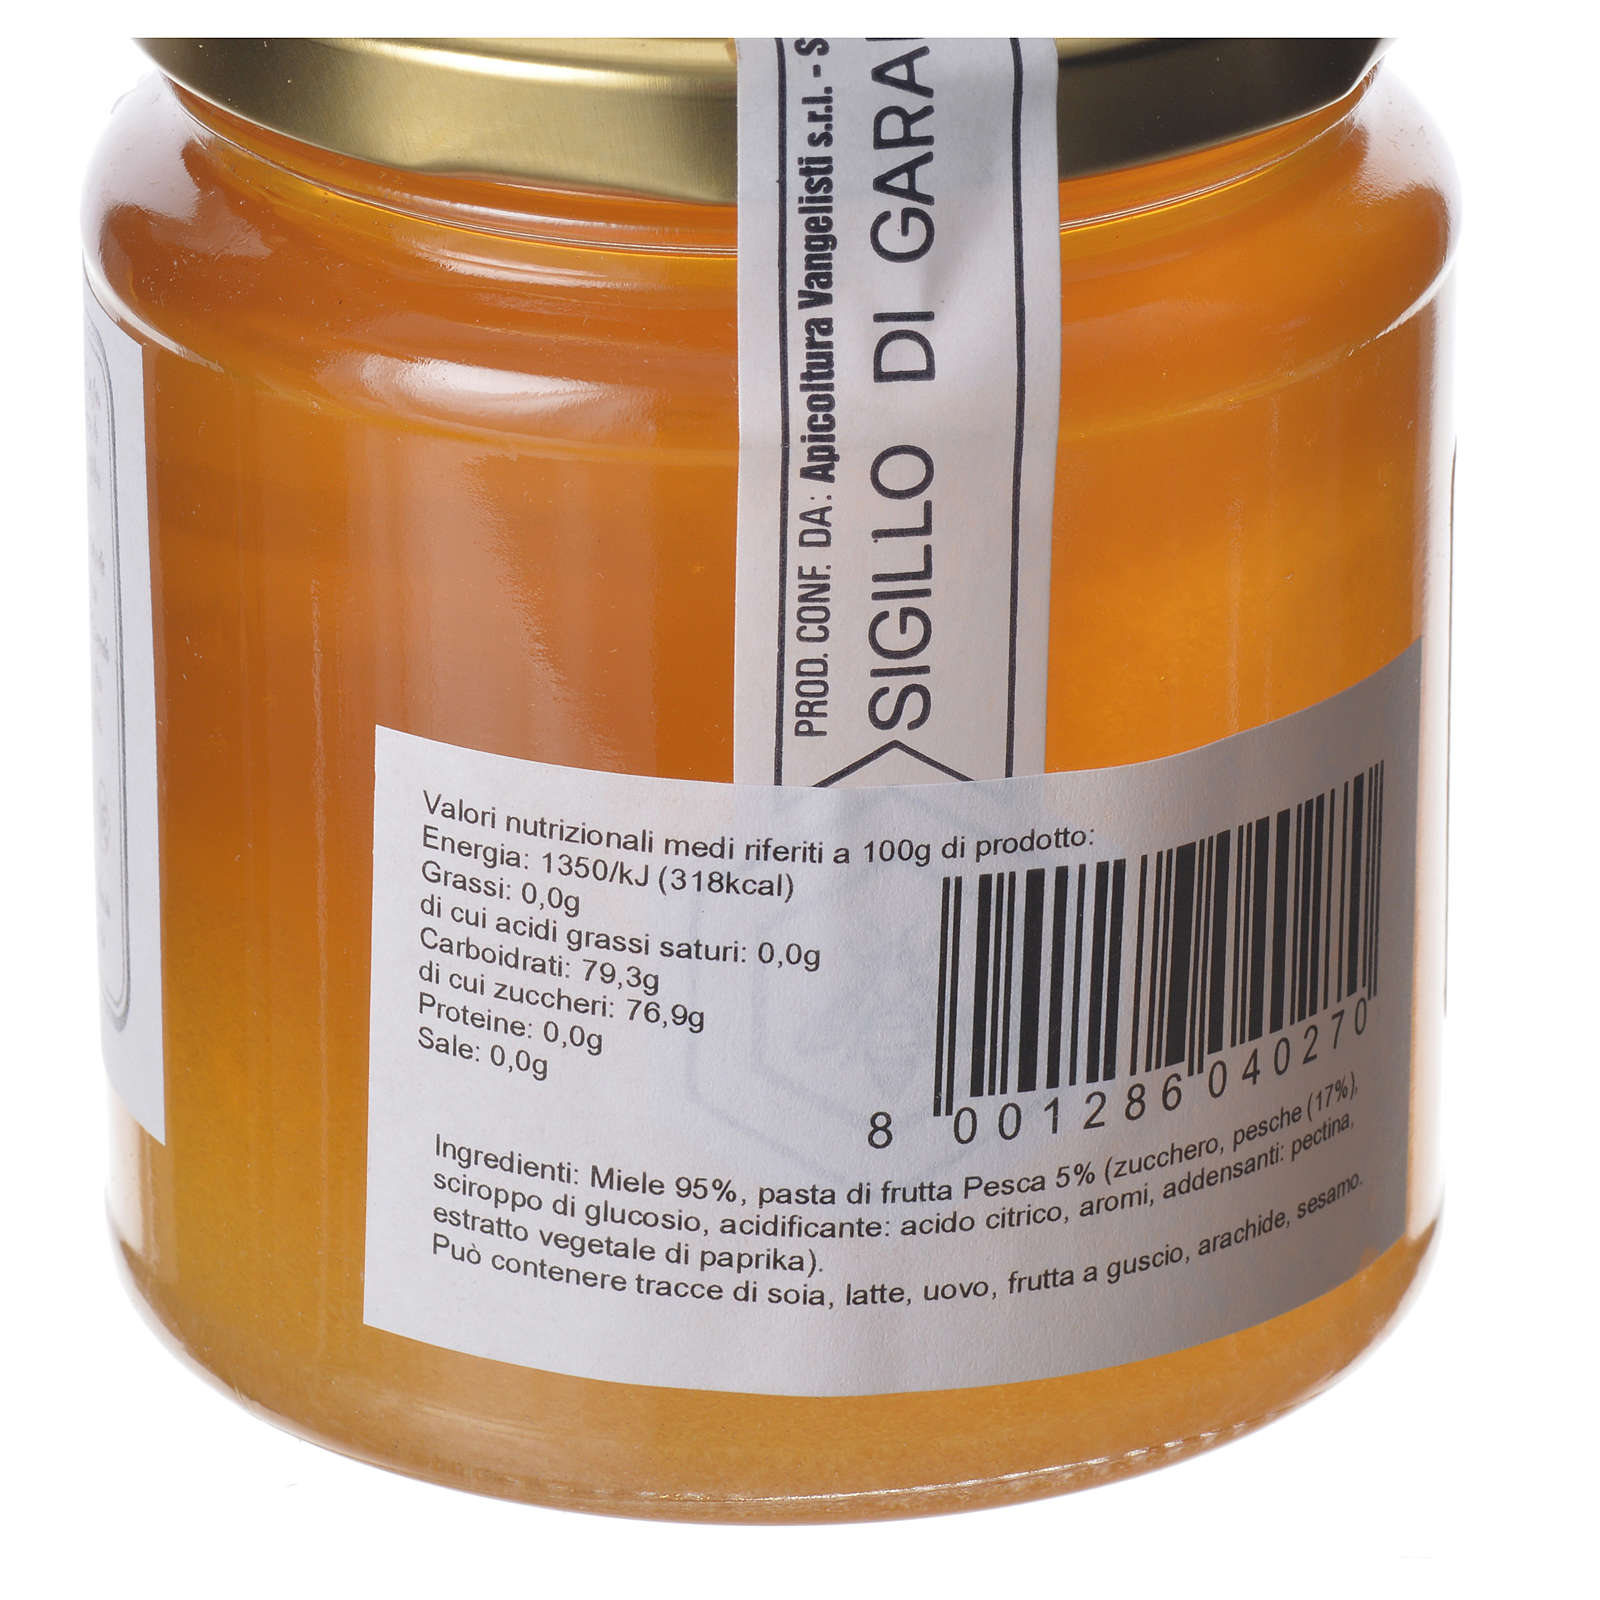 Honey with peach flavor 400g Camaldoli 3